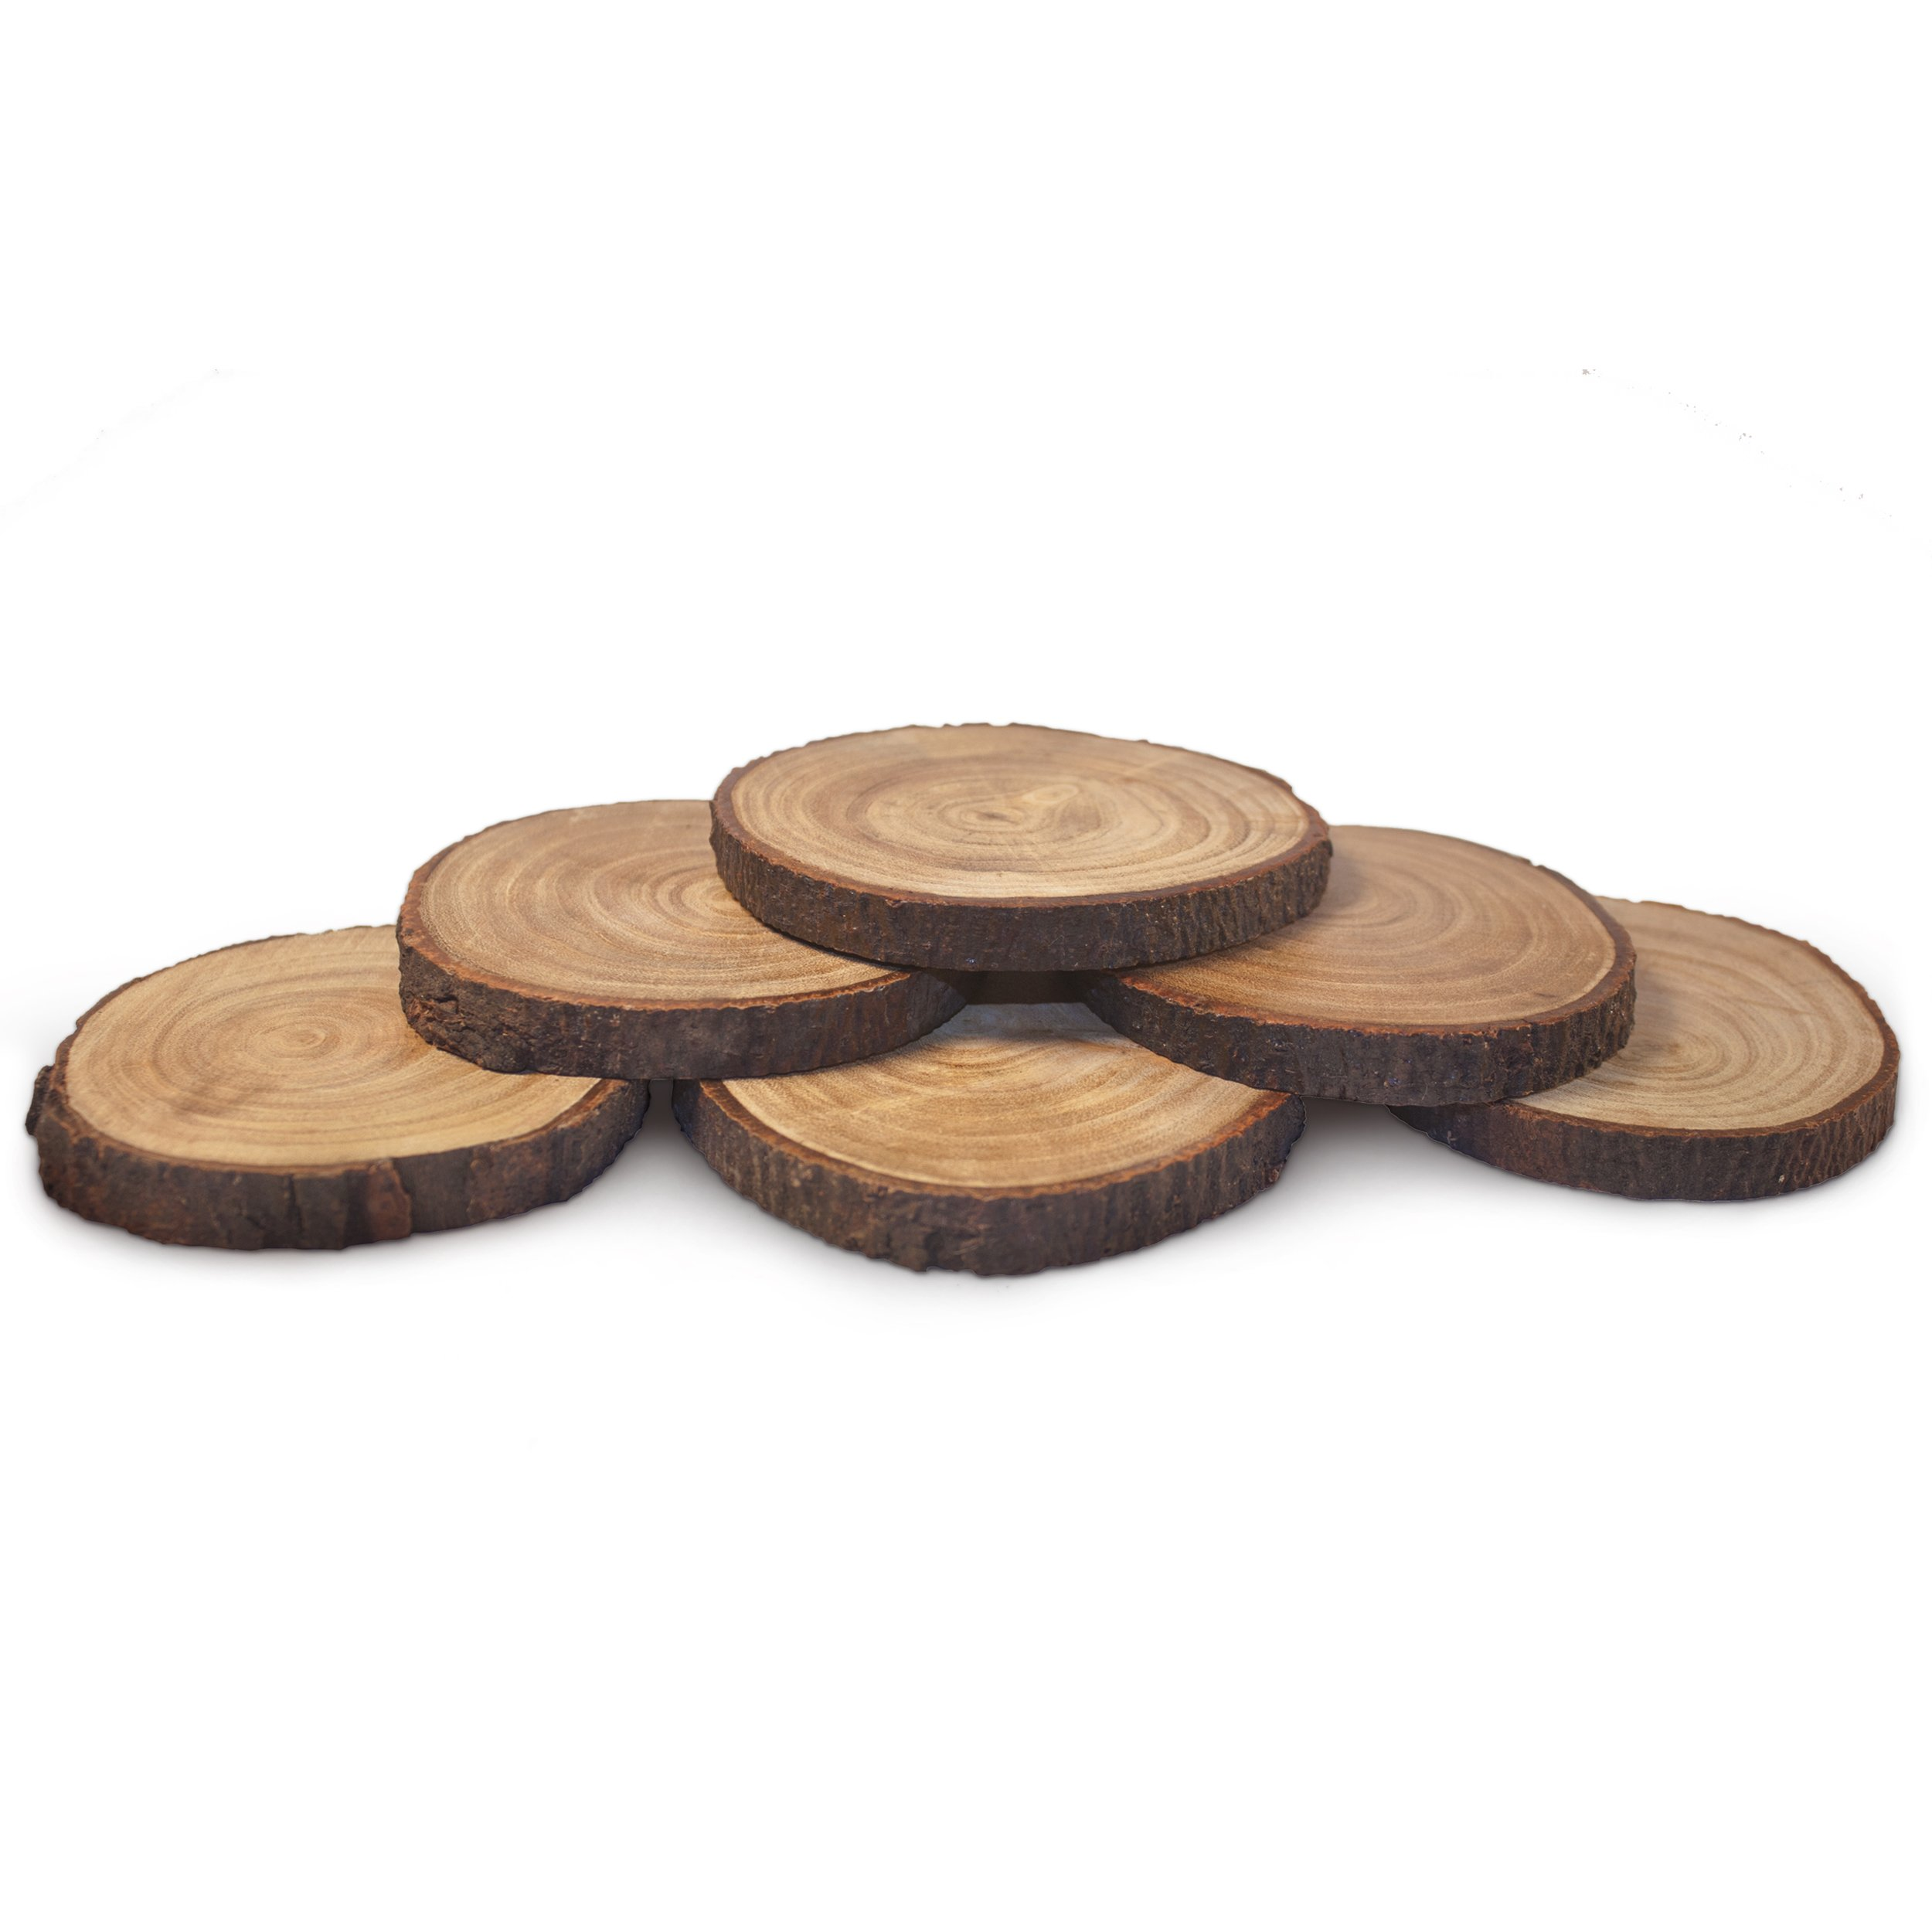 Natural Wood Coasters Set - Real Poplar Wood Slices - Coated in Polyurethane for Surface Protection While Adding an Authentic Rustic Feel to Your Home - Set of 6 - By PoplarCoasters